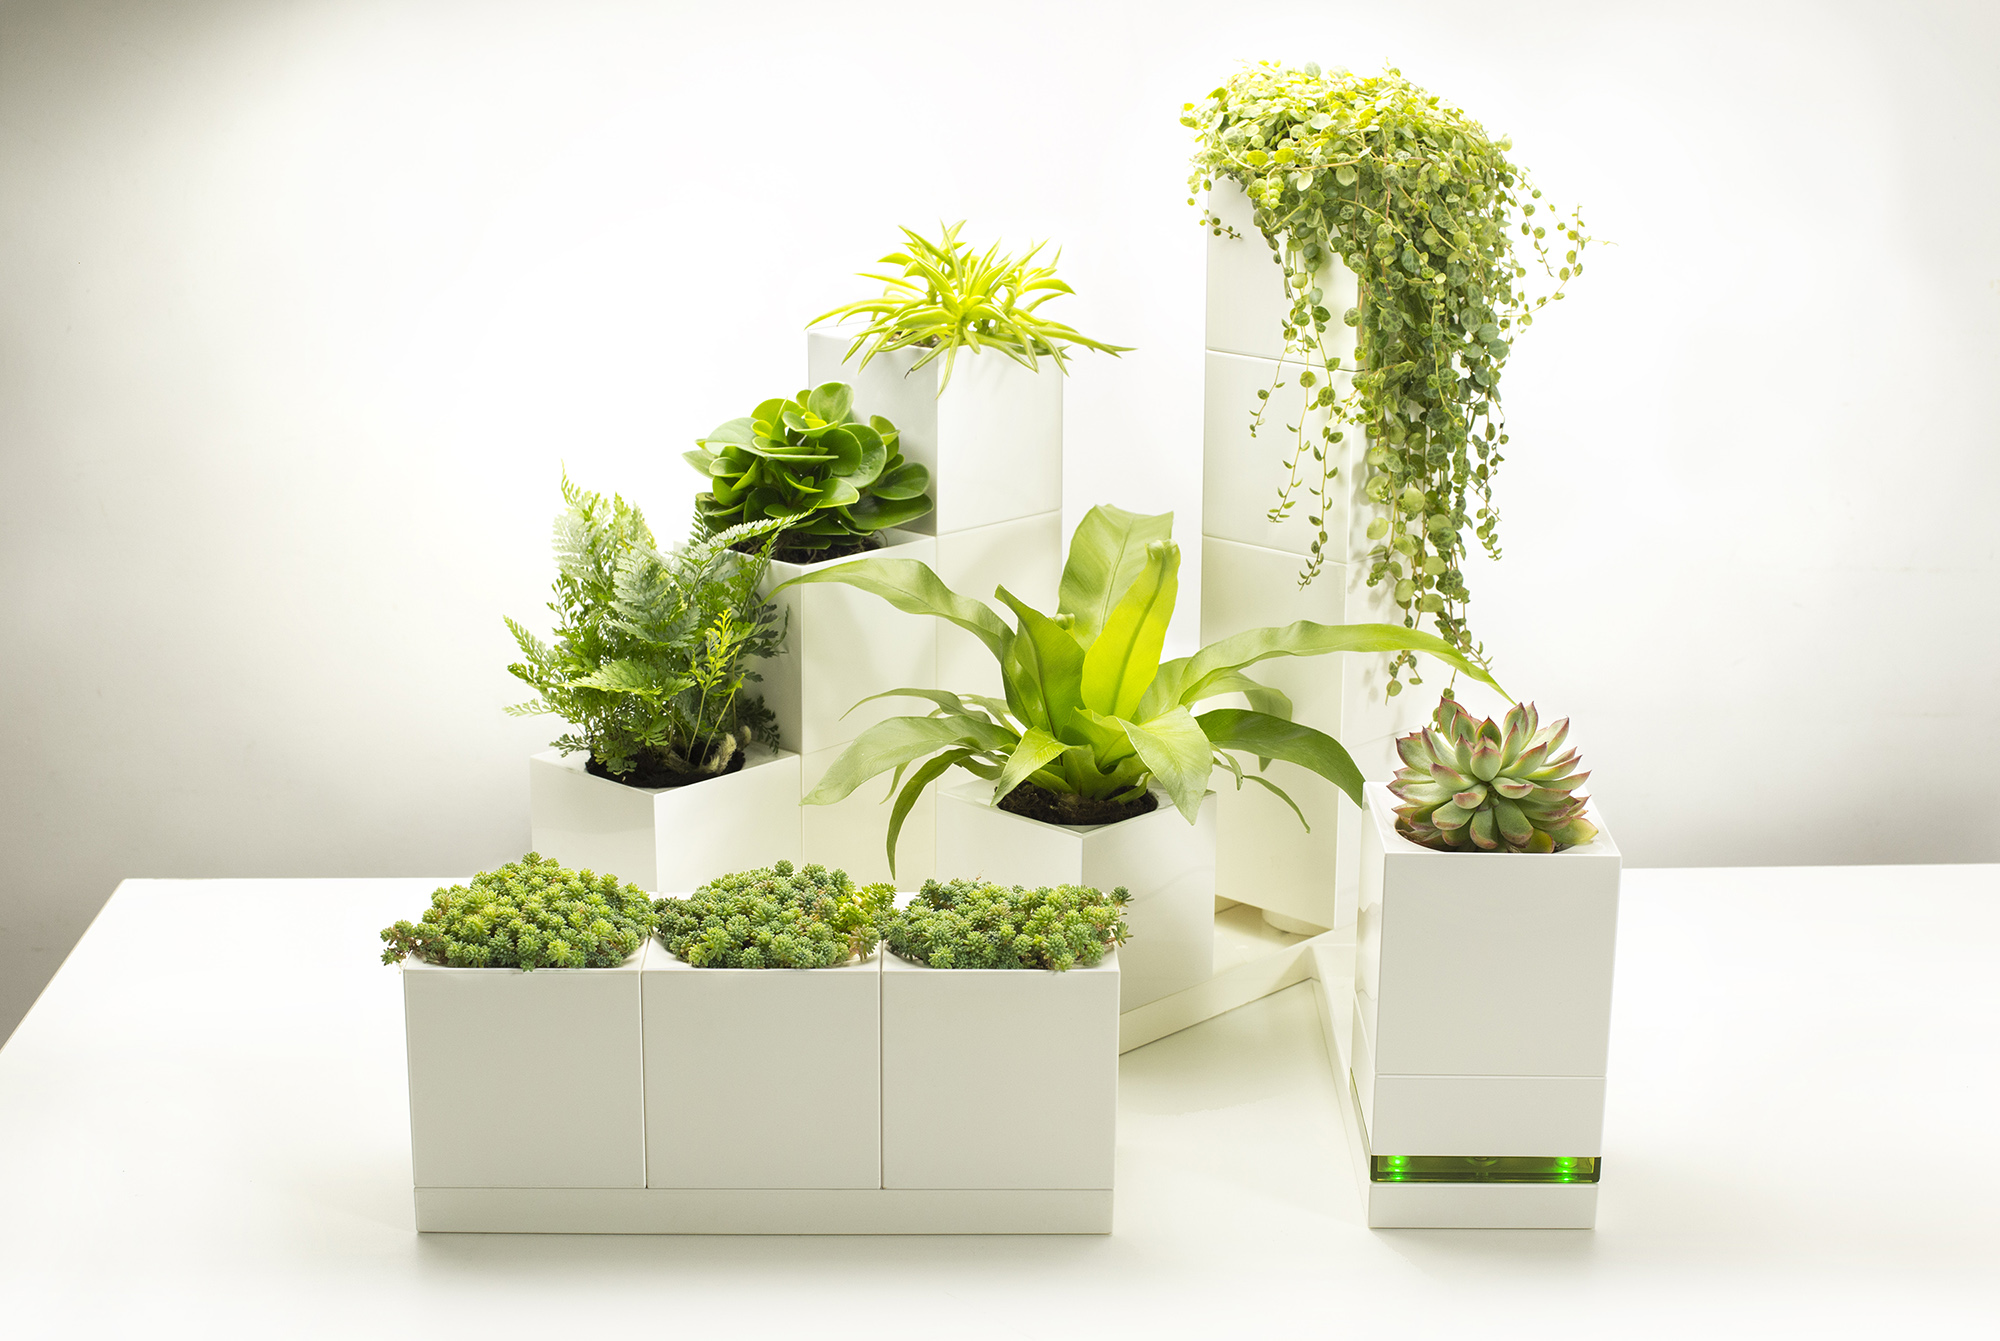 LeGrow modular planters are like Legos for indoor gardening